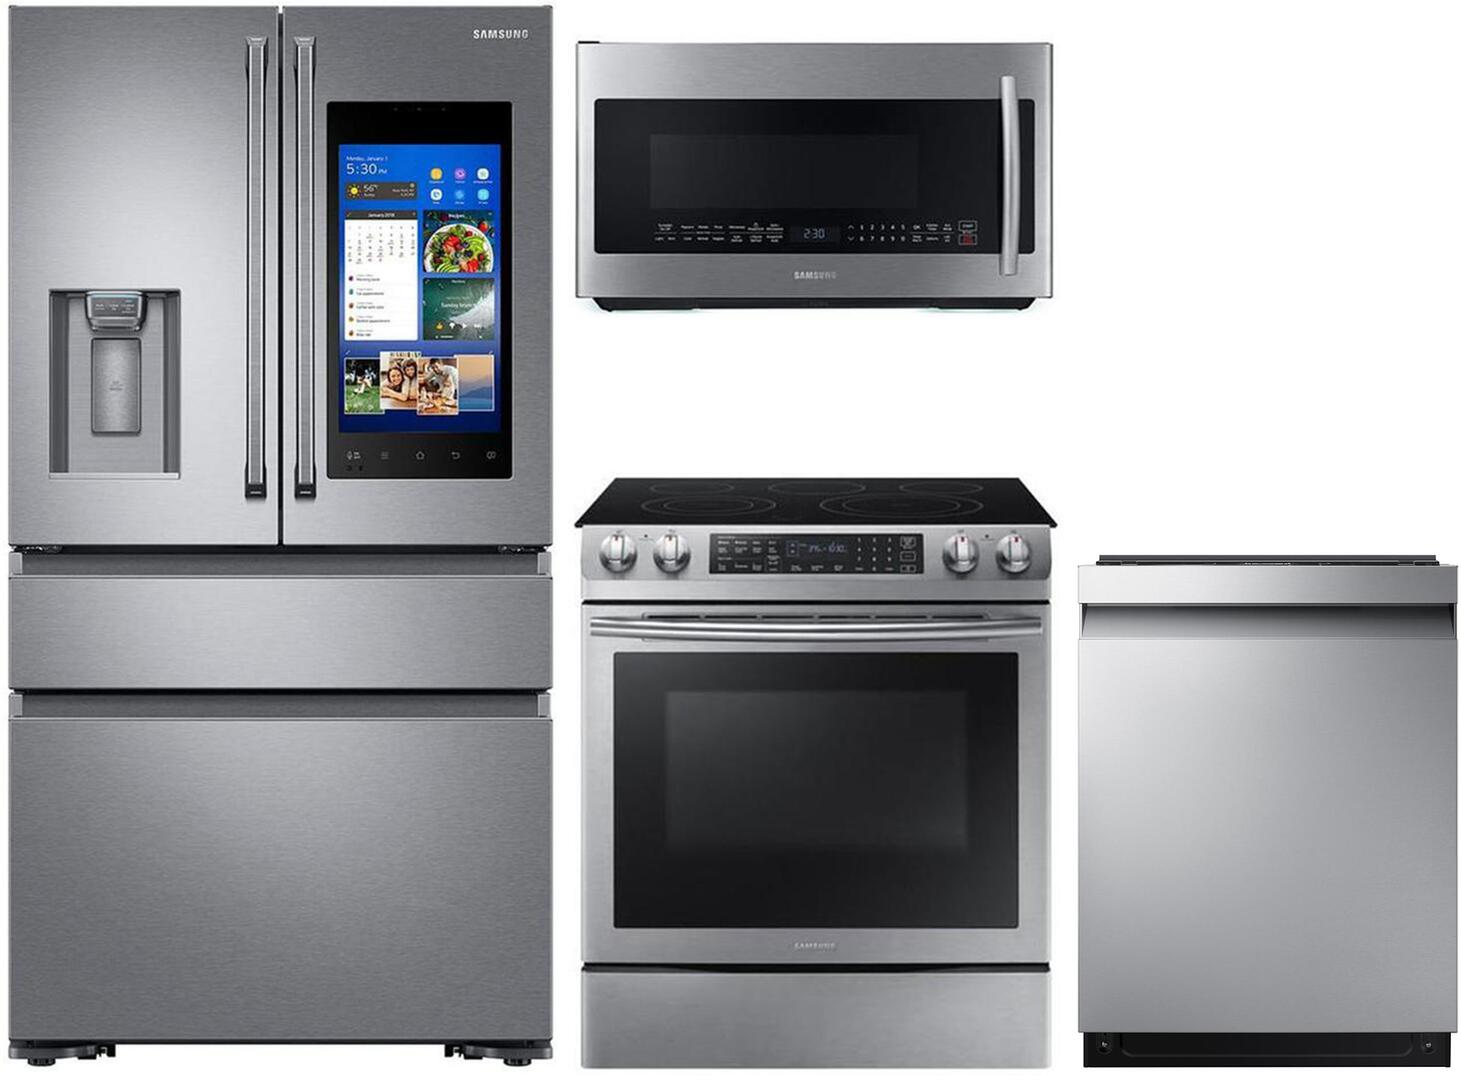 Samsung Appliance 757428 Kitchen Appliance Packages  Appliances Connection